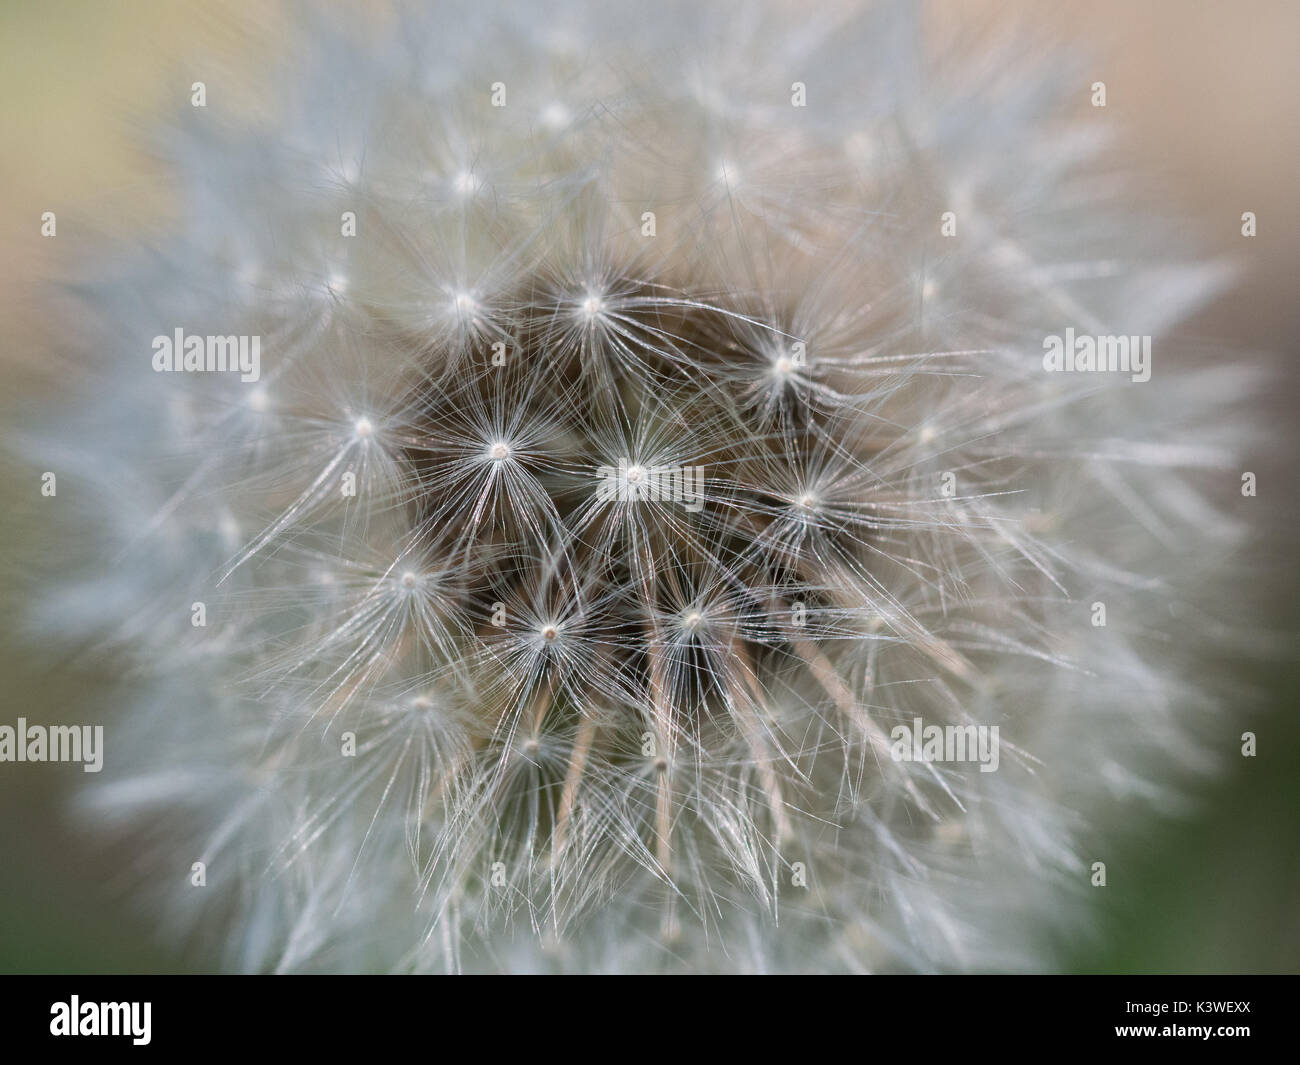 a close up macro detail of an undamaged dandelion head focussing on the outer florets, Uk - Stock Image